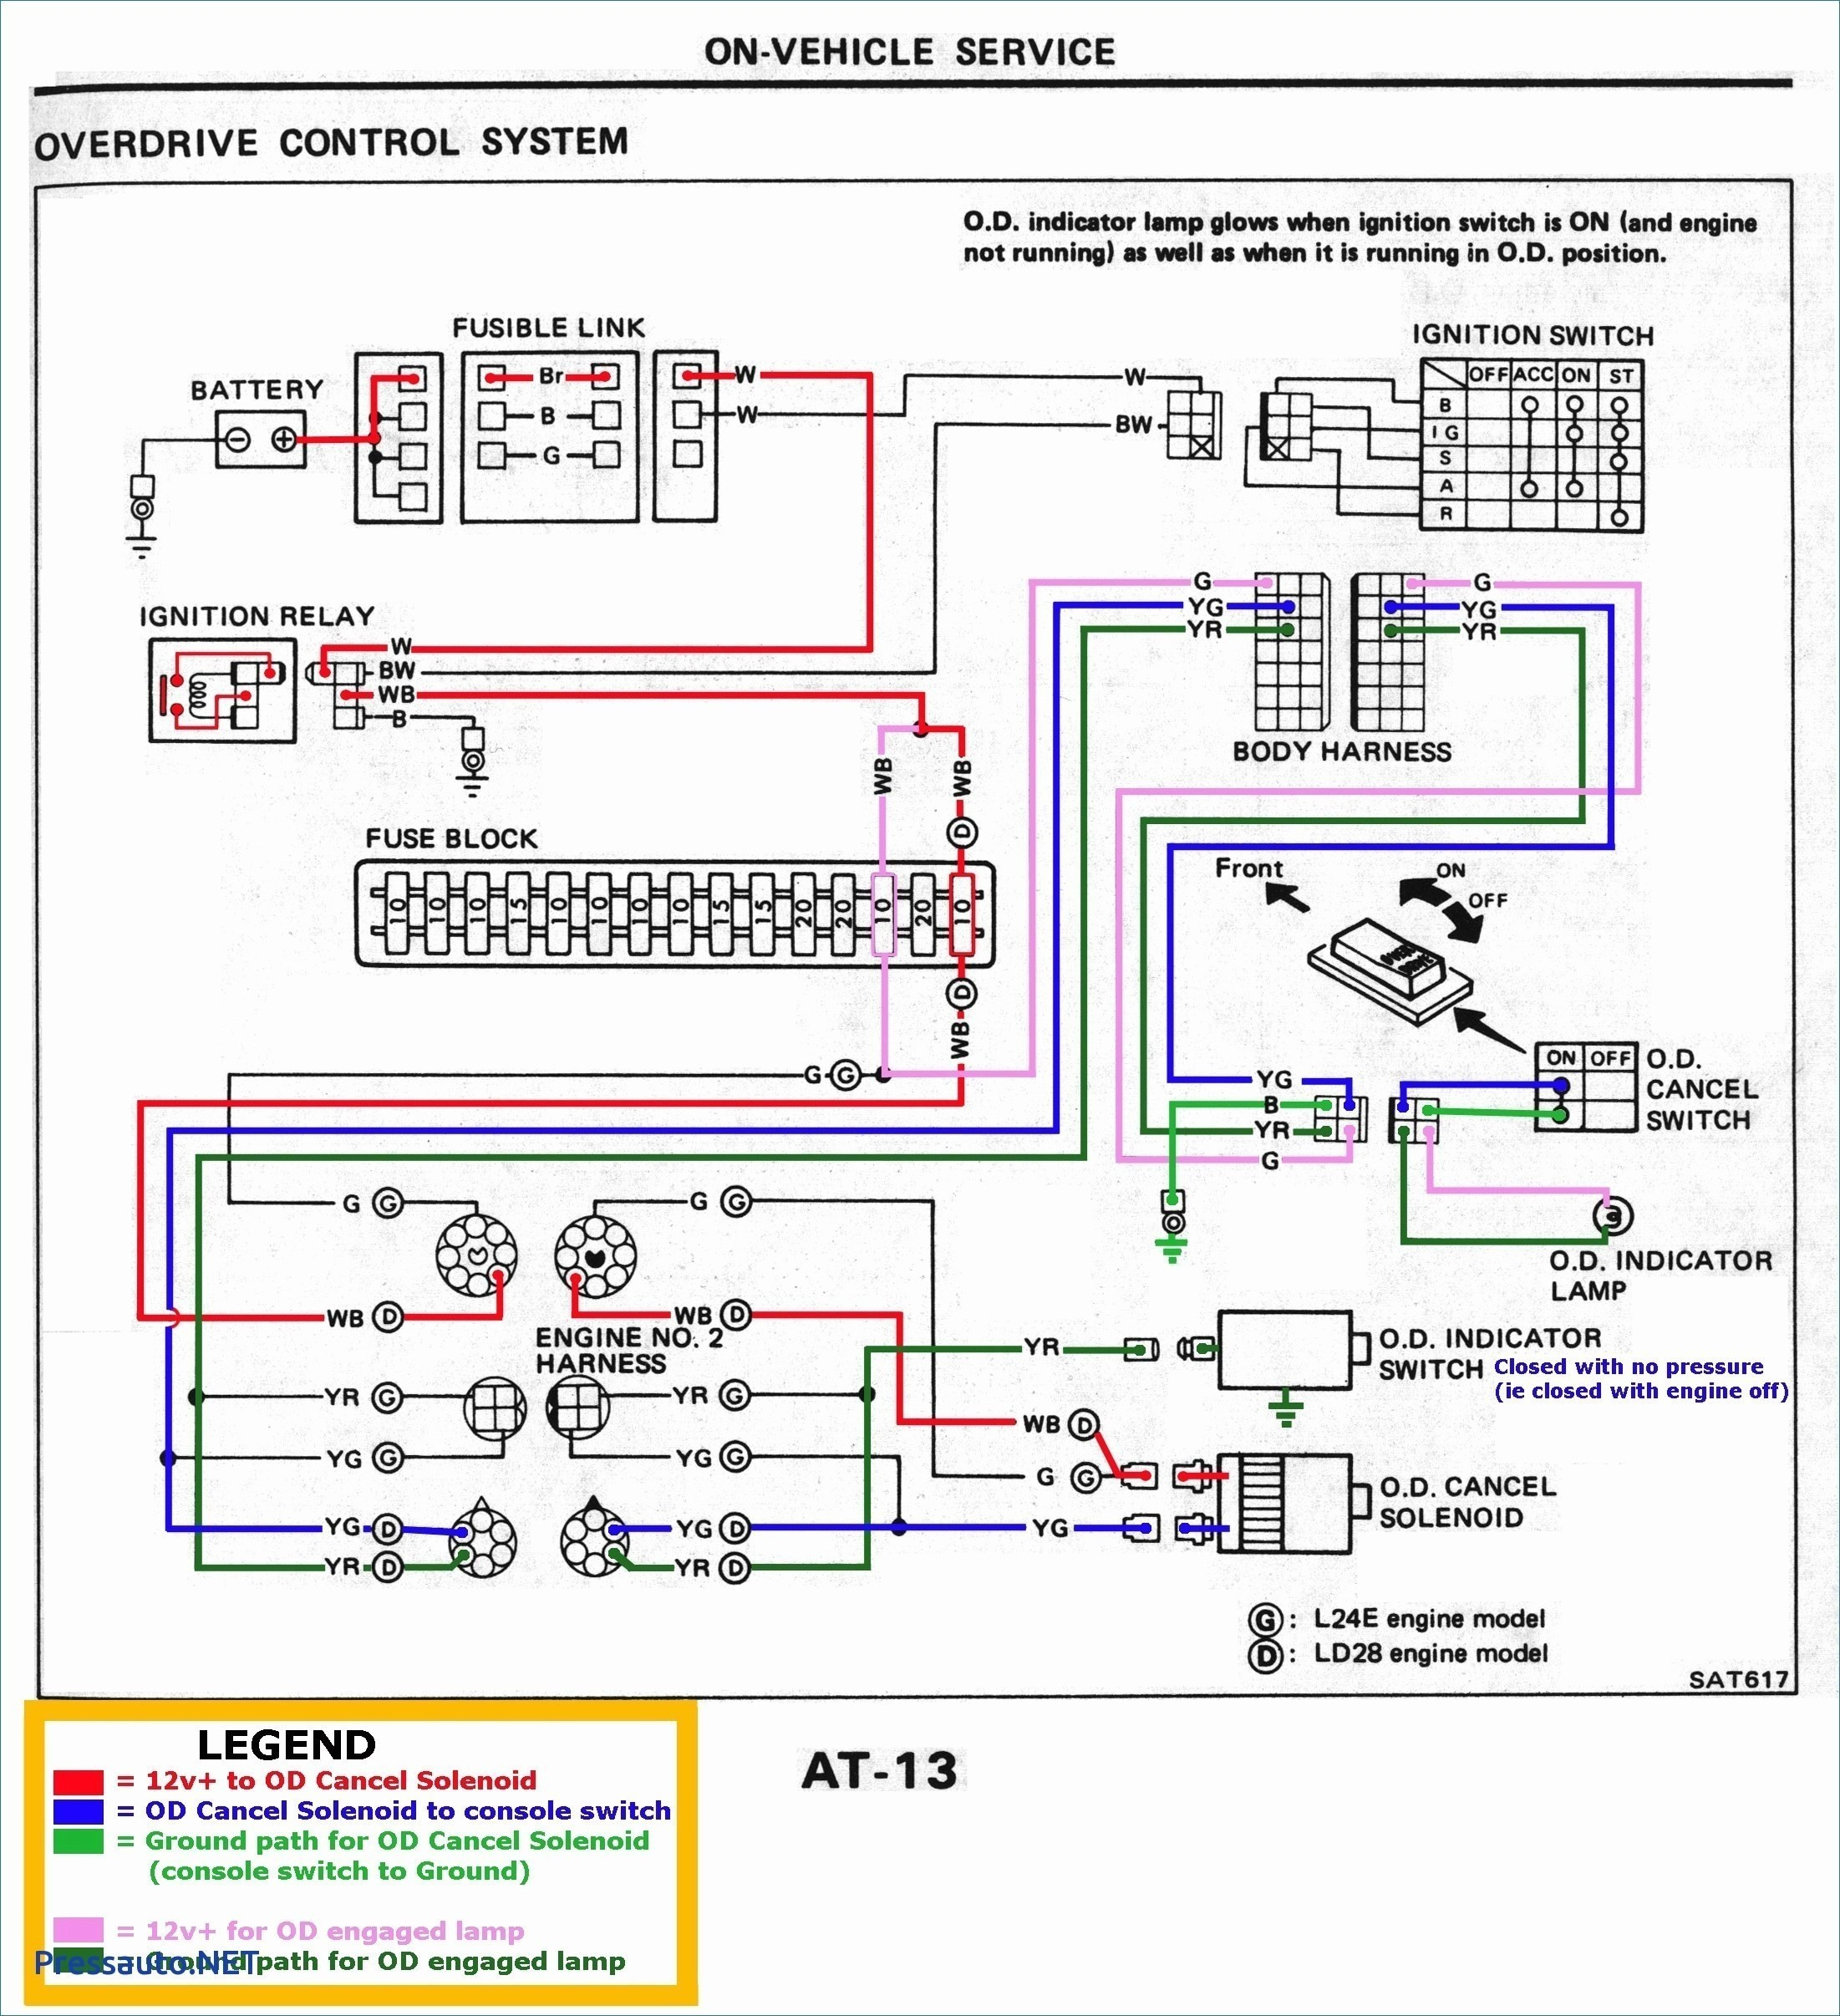 Simple Motorcycle Wiring Diagram Basic Ignition Switch Wiring Diagram Real Wiring Diagram • Of Simple Motorcycle Wiring Diagram